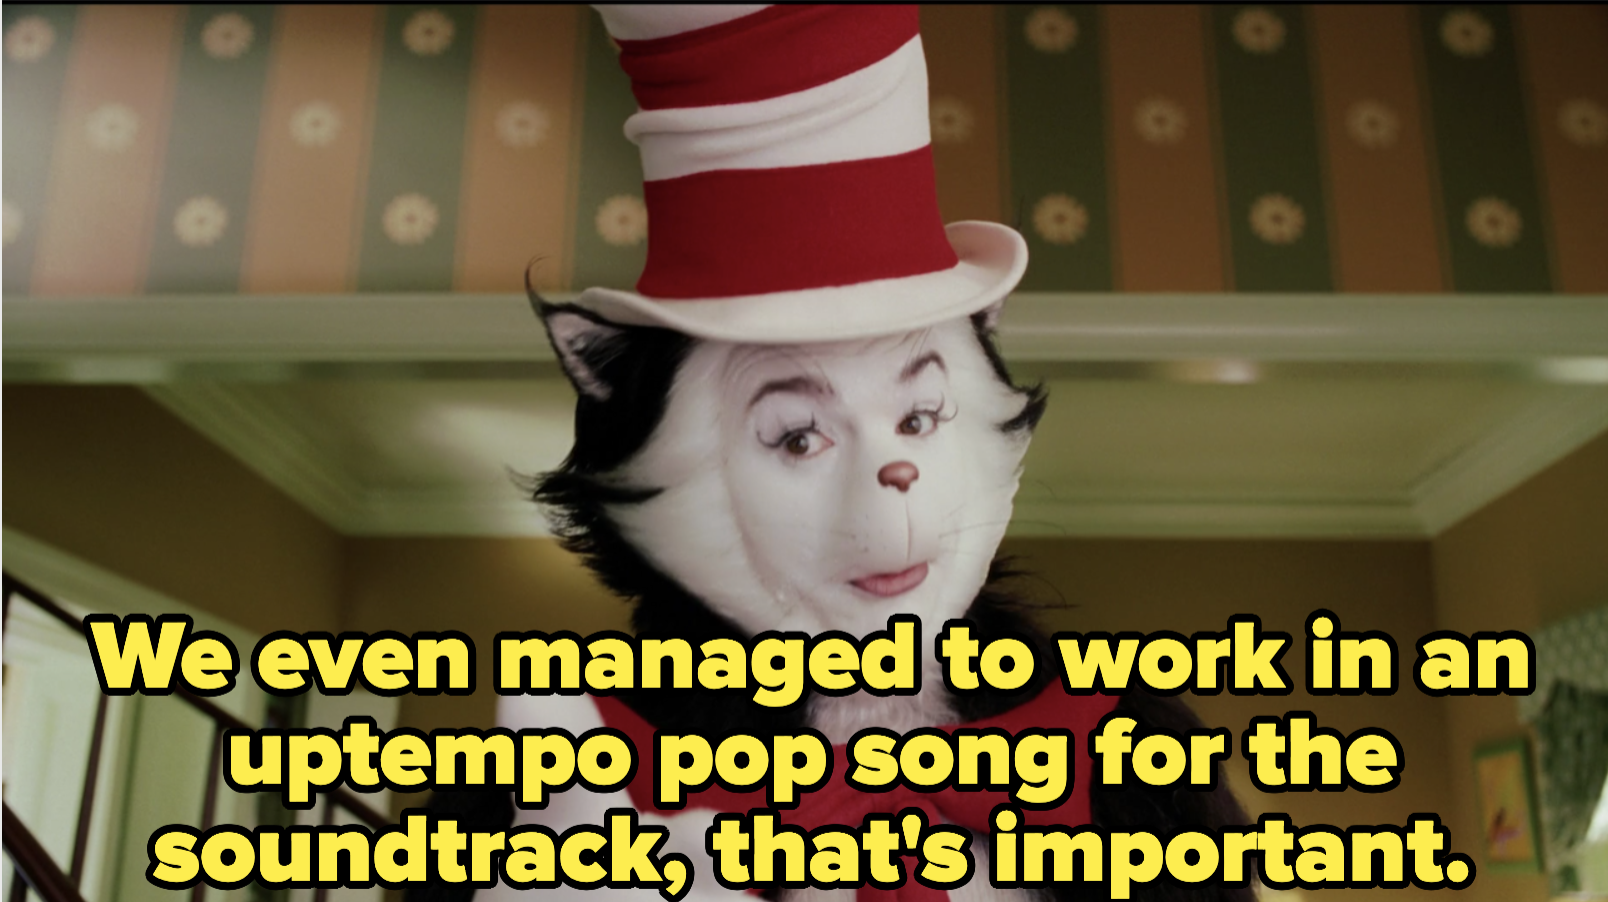 """The cat says, """"we even managed to work in an uptempo pop song for the soundtrack, that's important."""""""